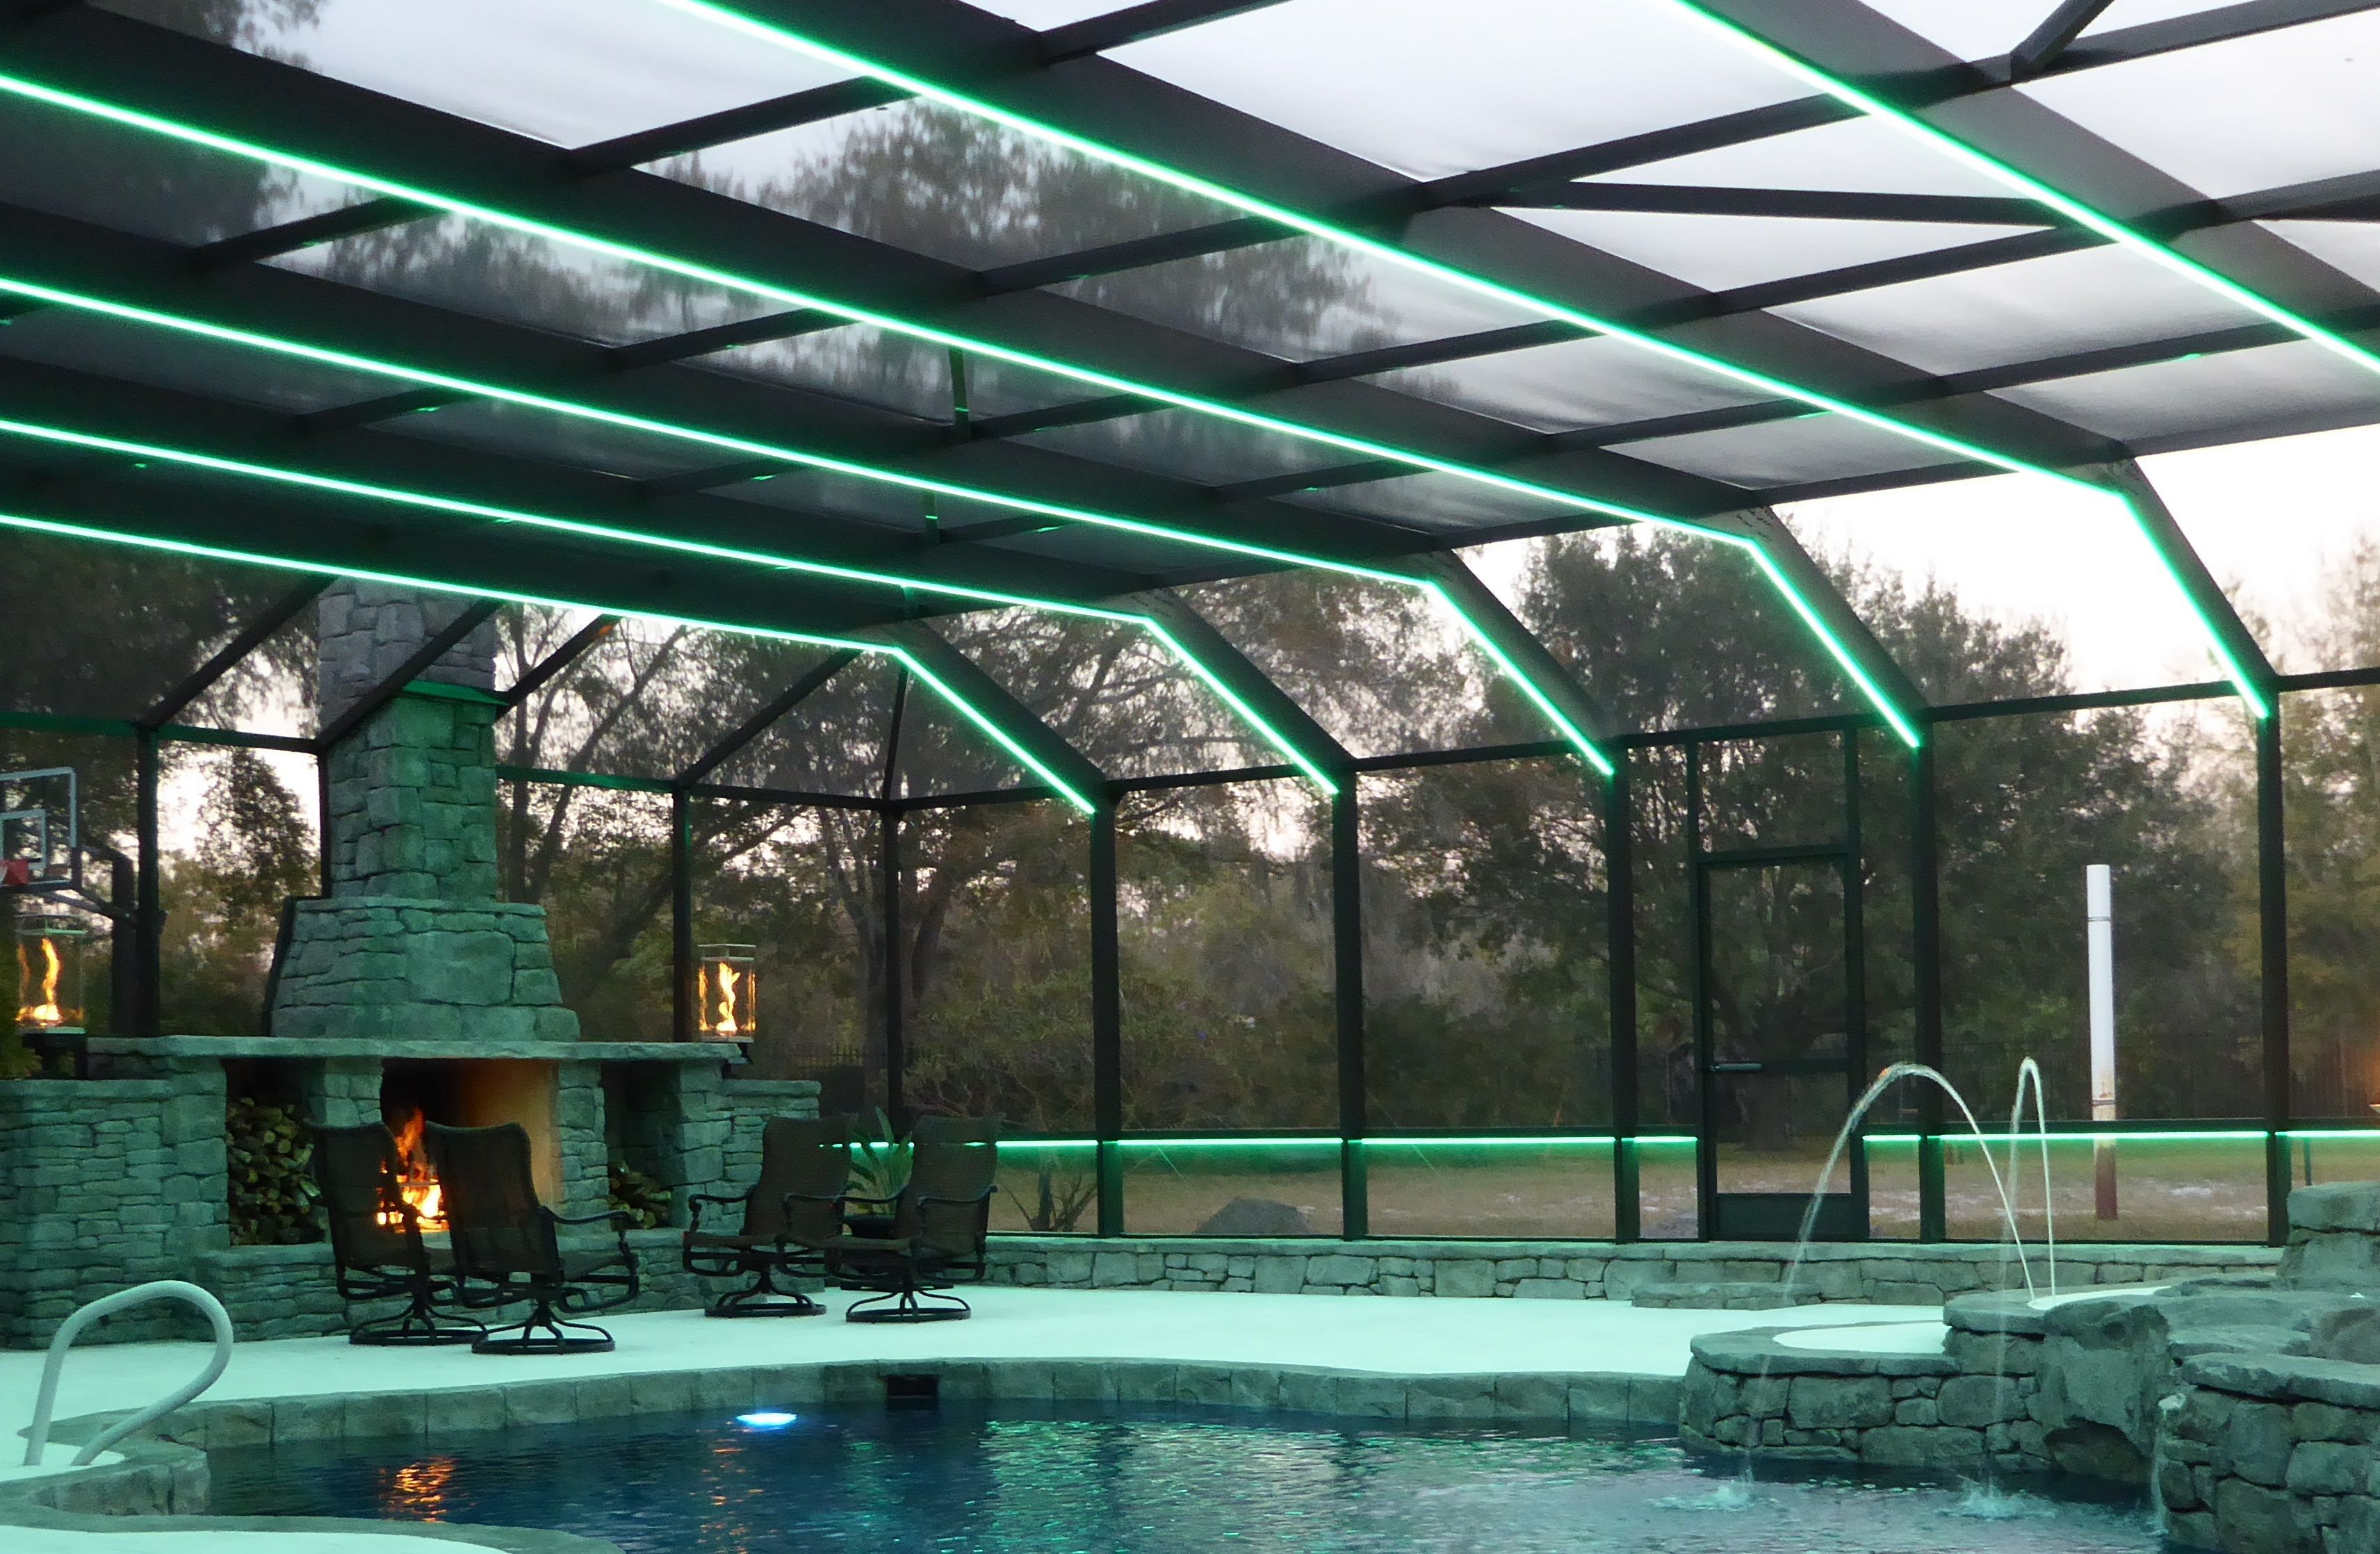 Light Up Your Florida Pool Enclosure With Any Color You Can Imagine White Or Bronze Aluminum Fixtur Pool Enclosure Lighting Best Outdoor Lighting Florida Pool